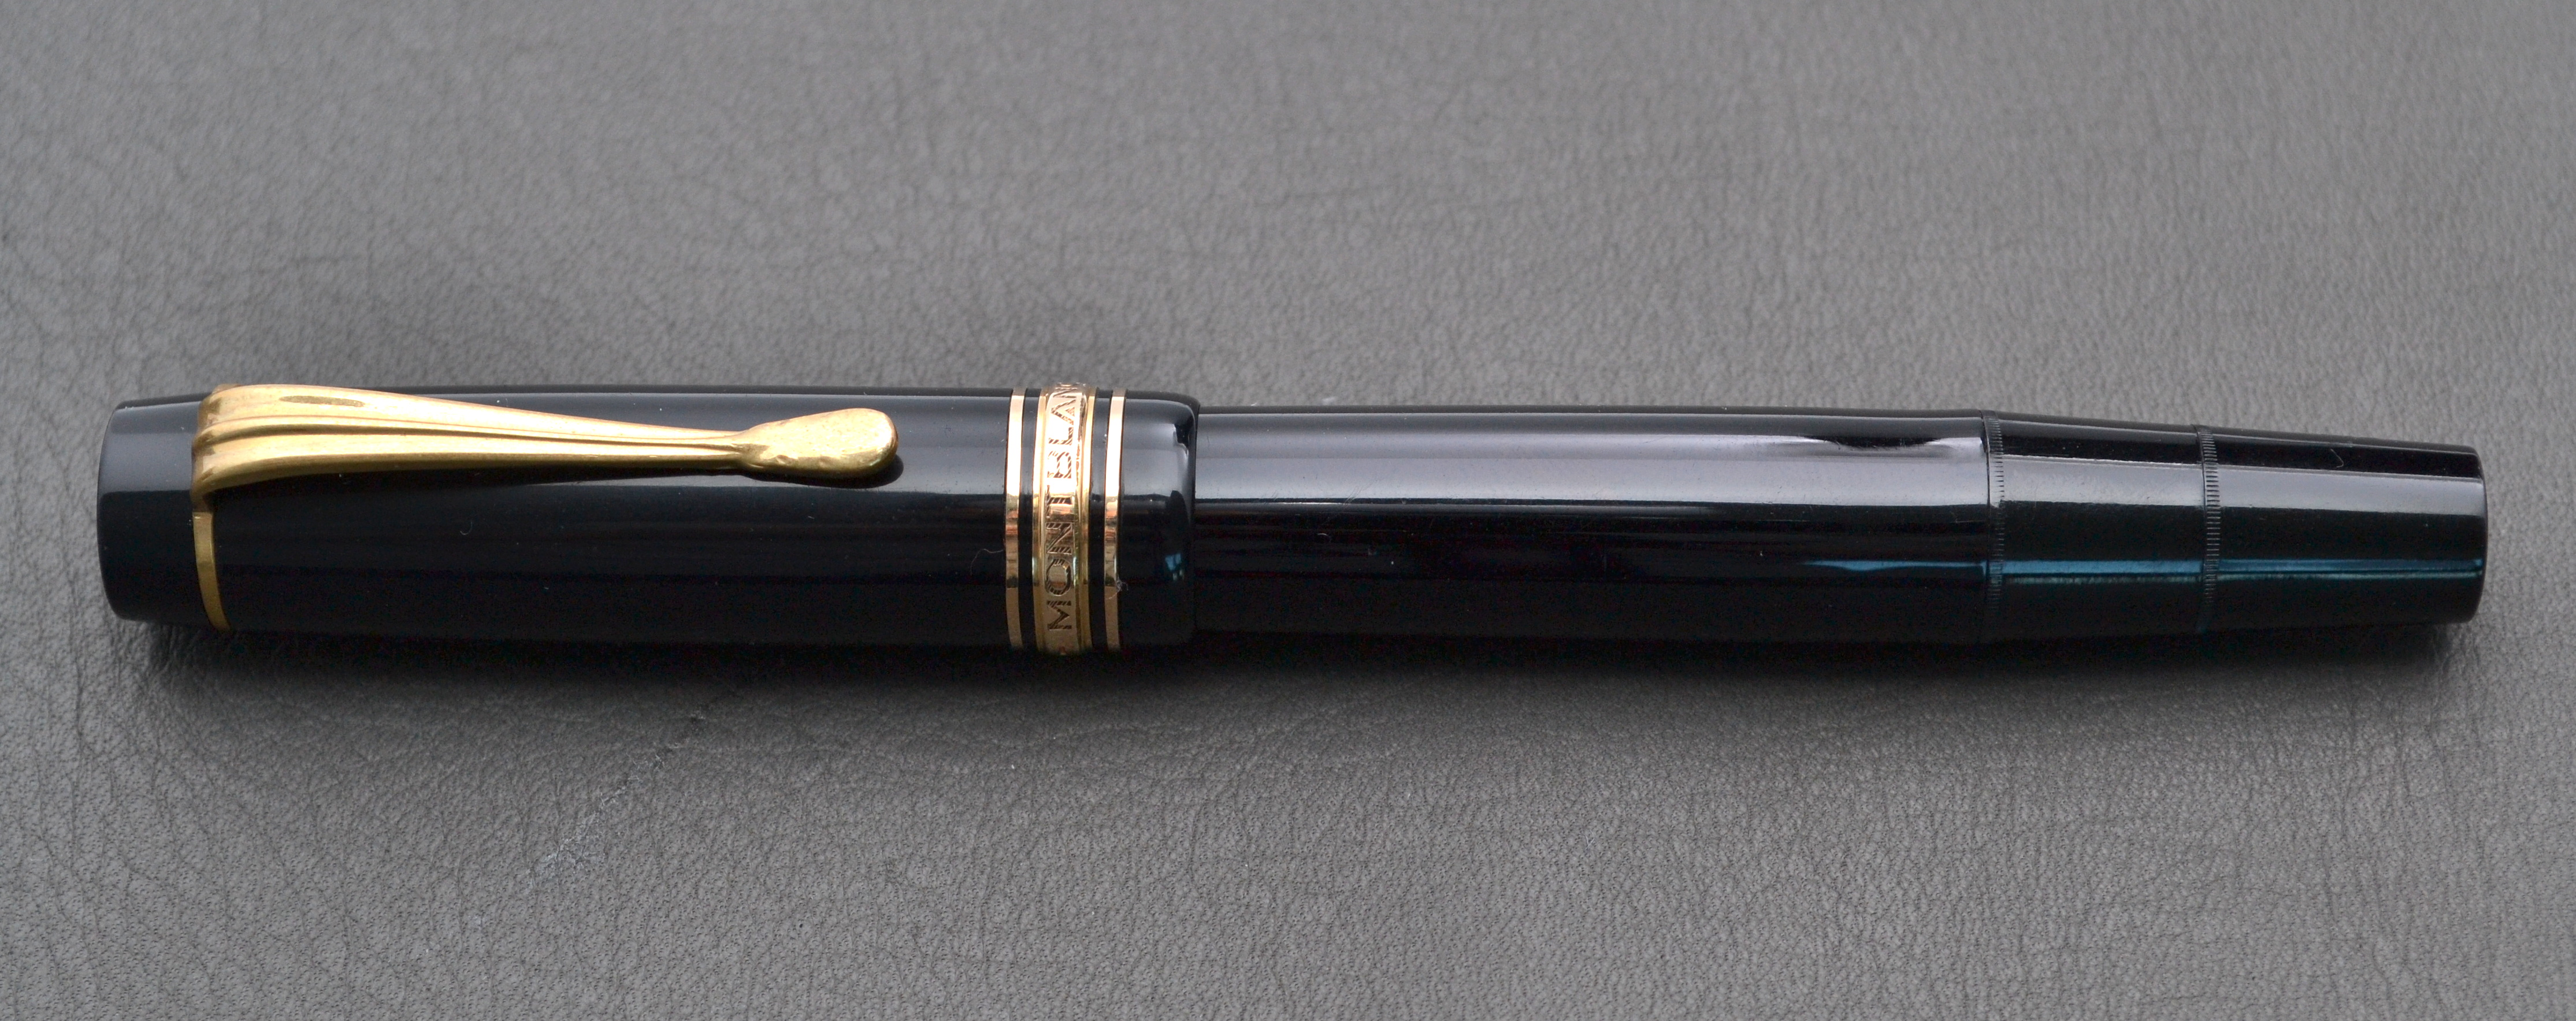 Montblanc meisterst ck 136 fountain pen review the for Montblanc house